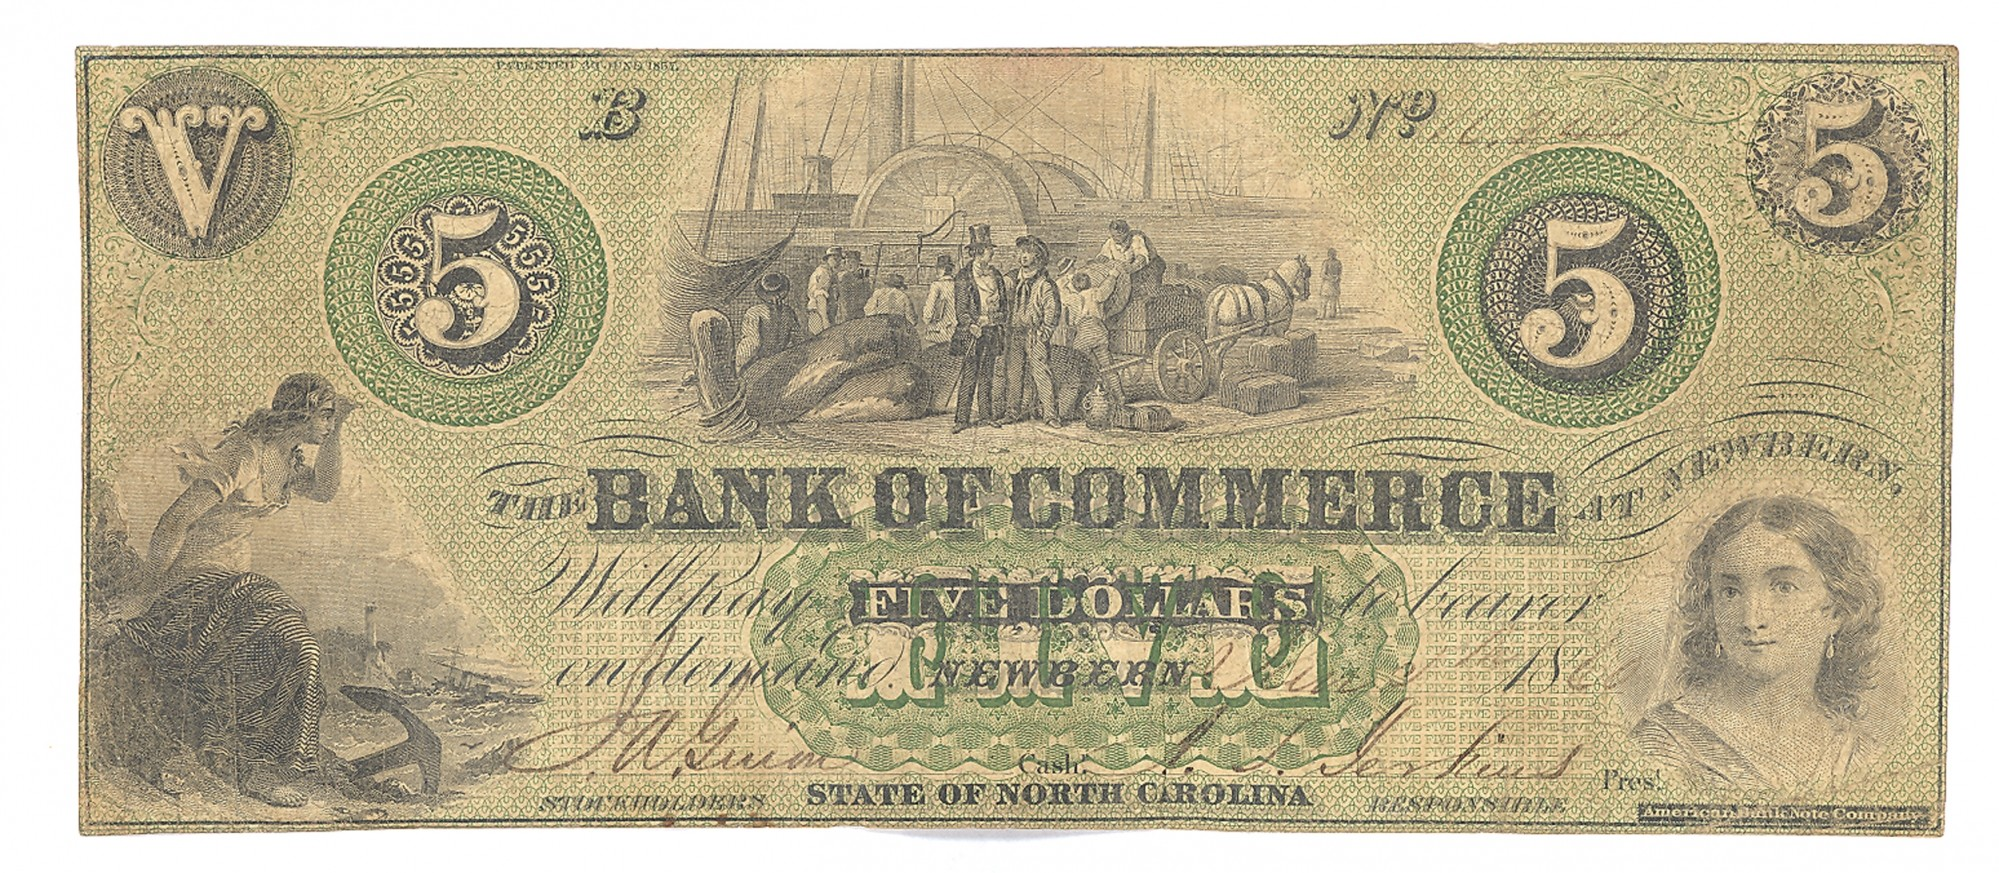 BANK OF COMMERCE, NORTH CAROLINA $5 NOTE